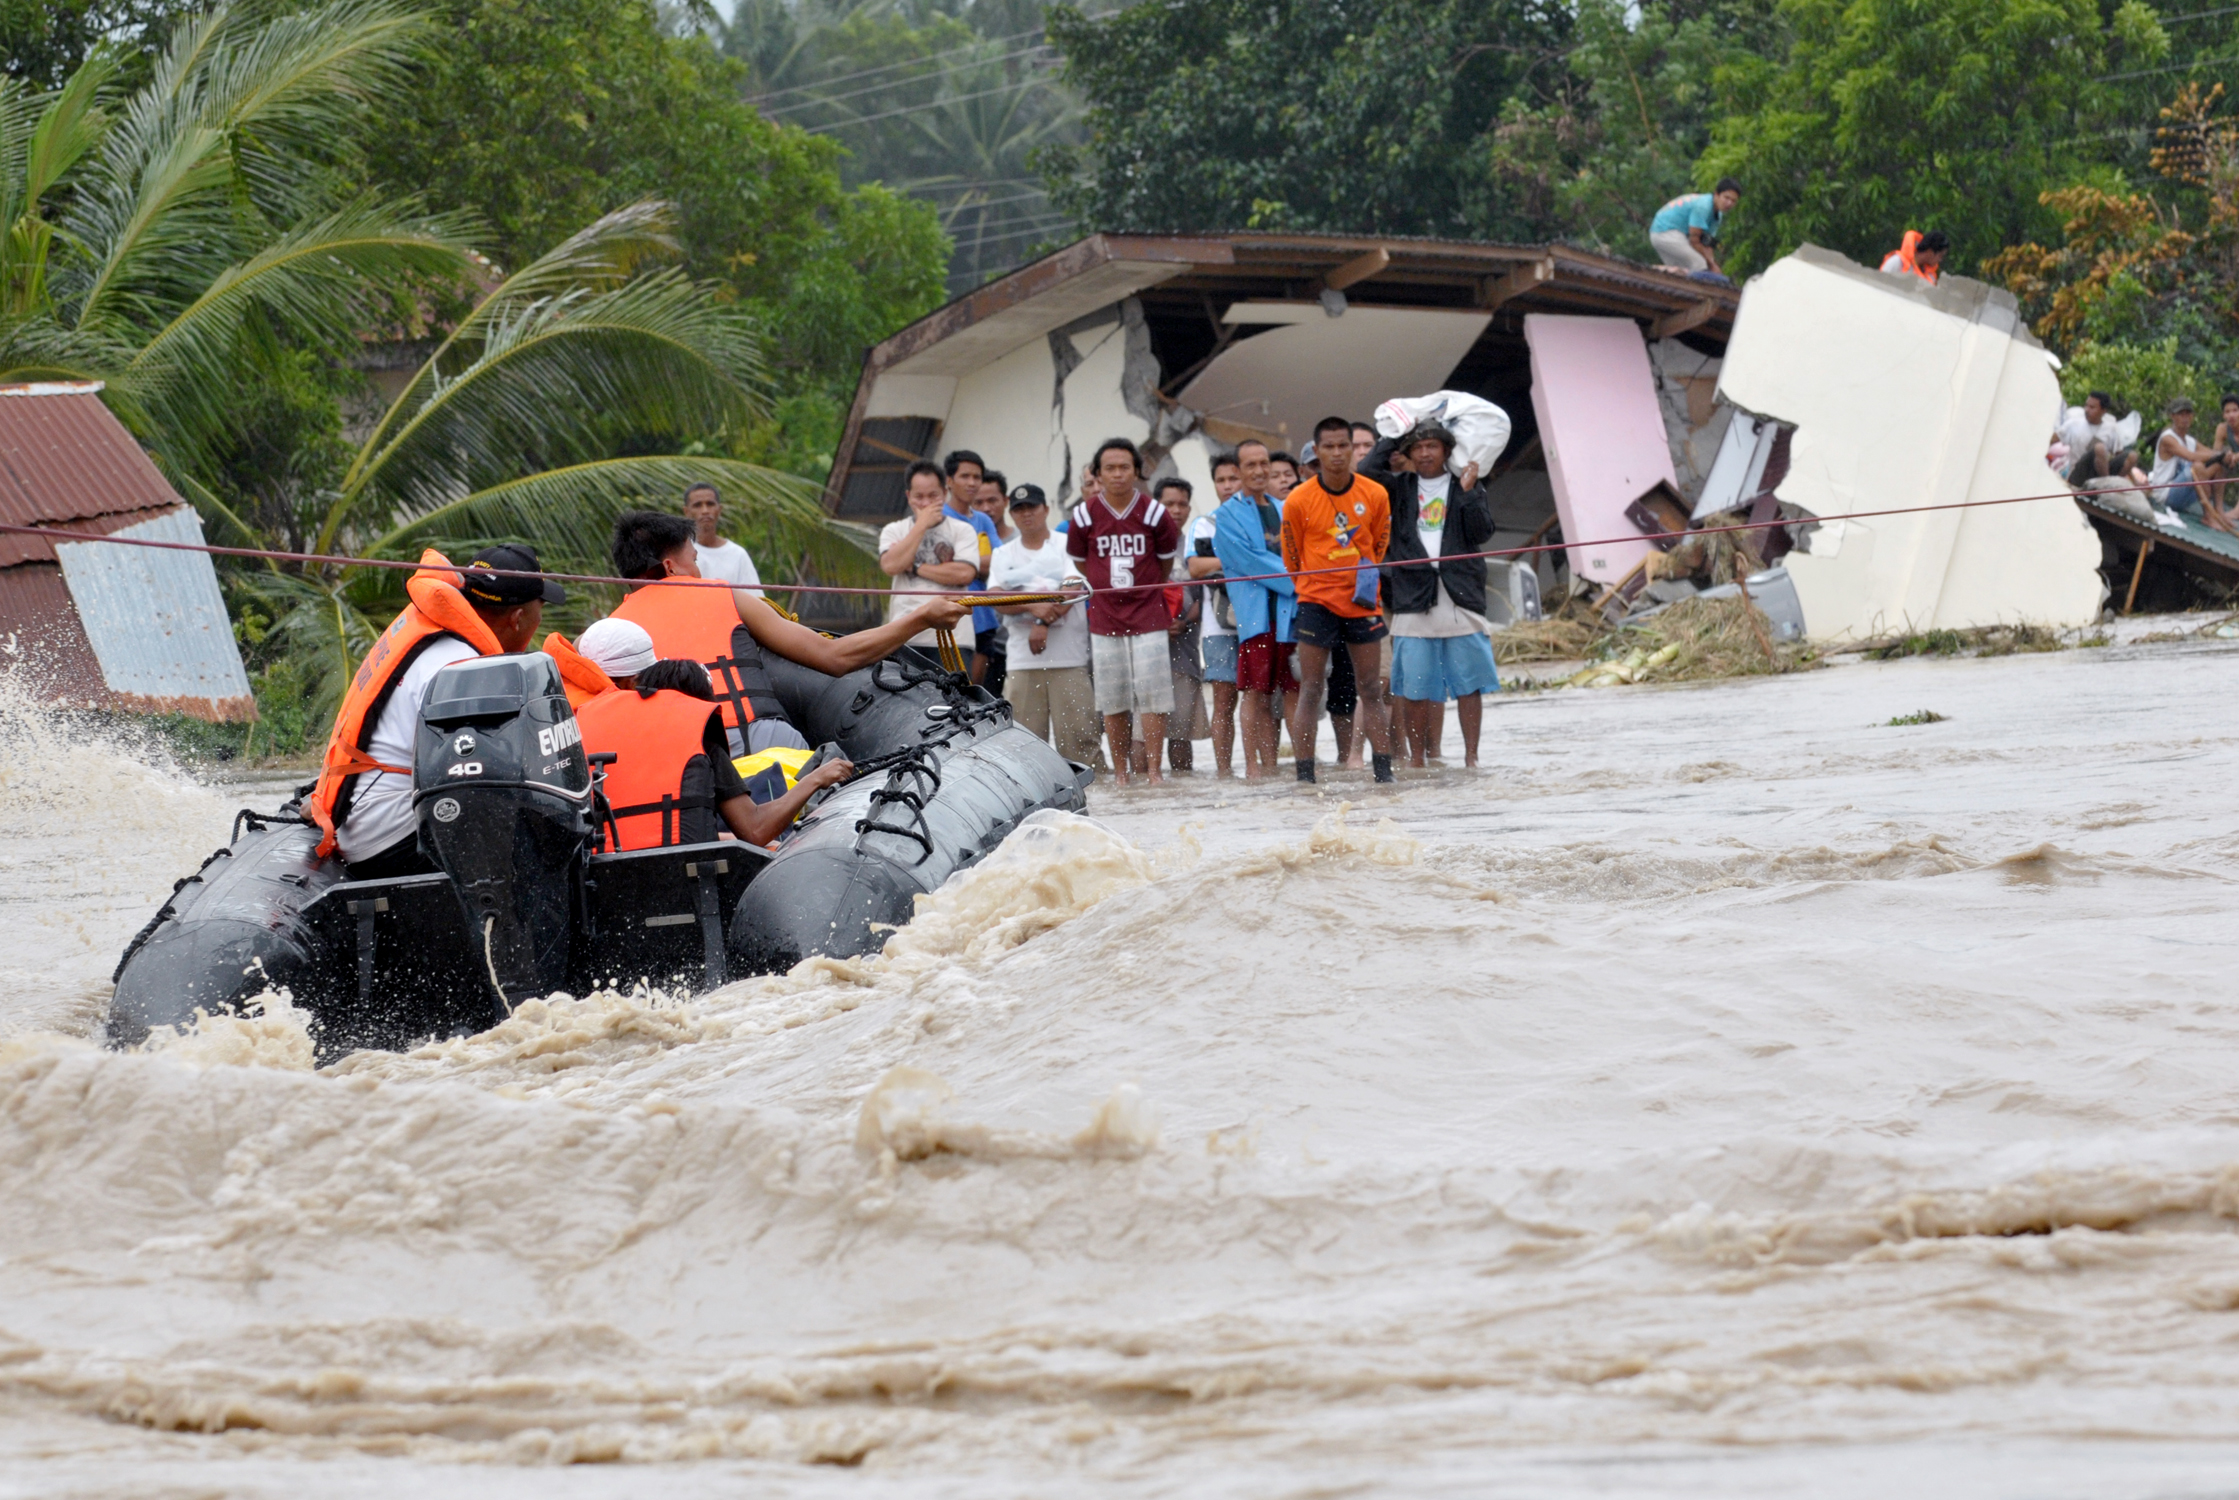 Floods in the aftermath of the Typhoon Marakot have left thousands stranded